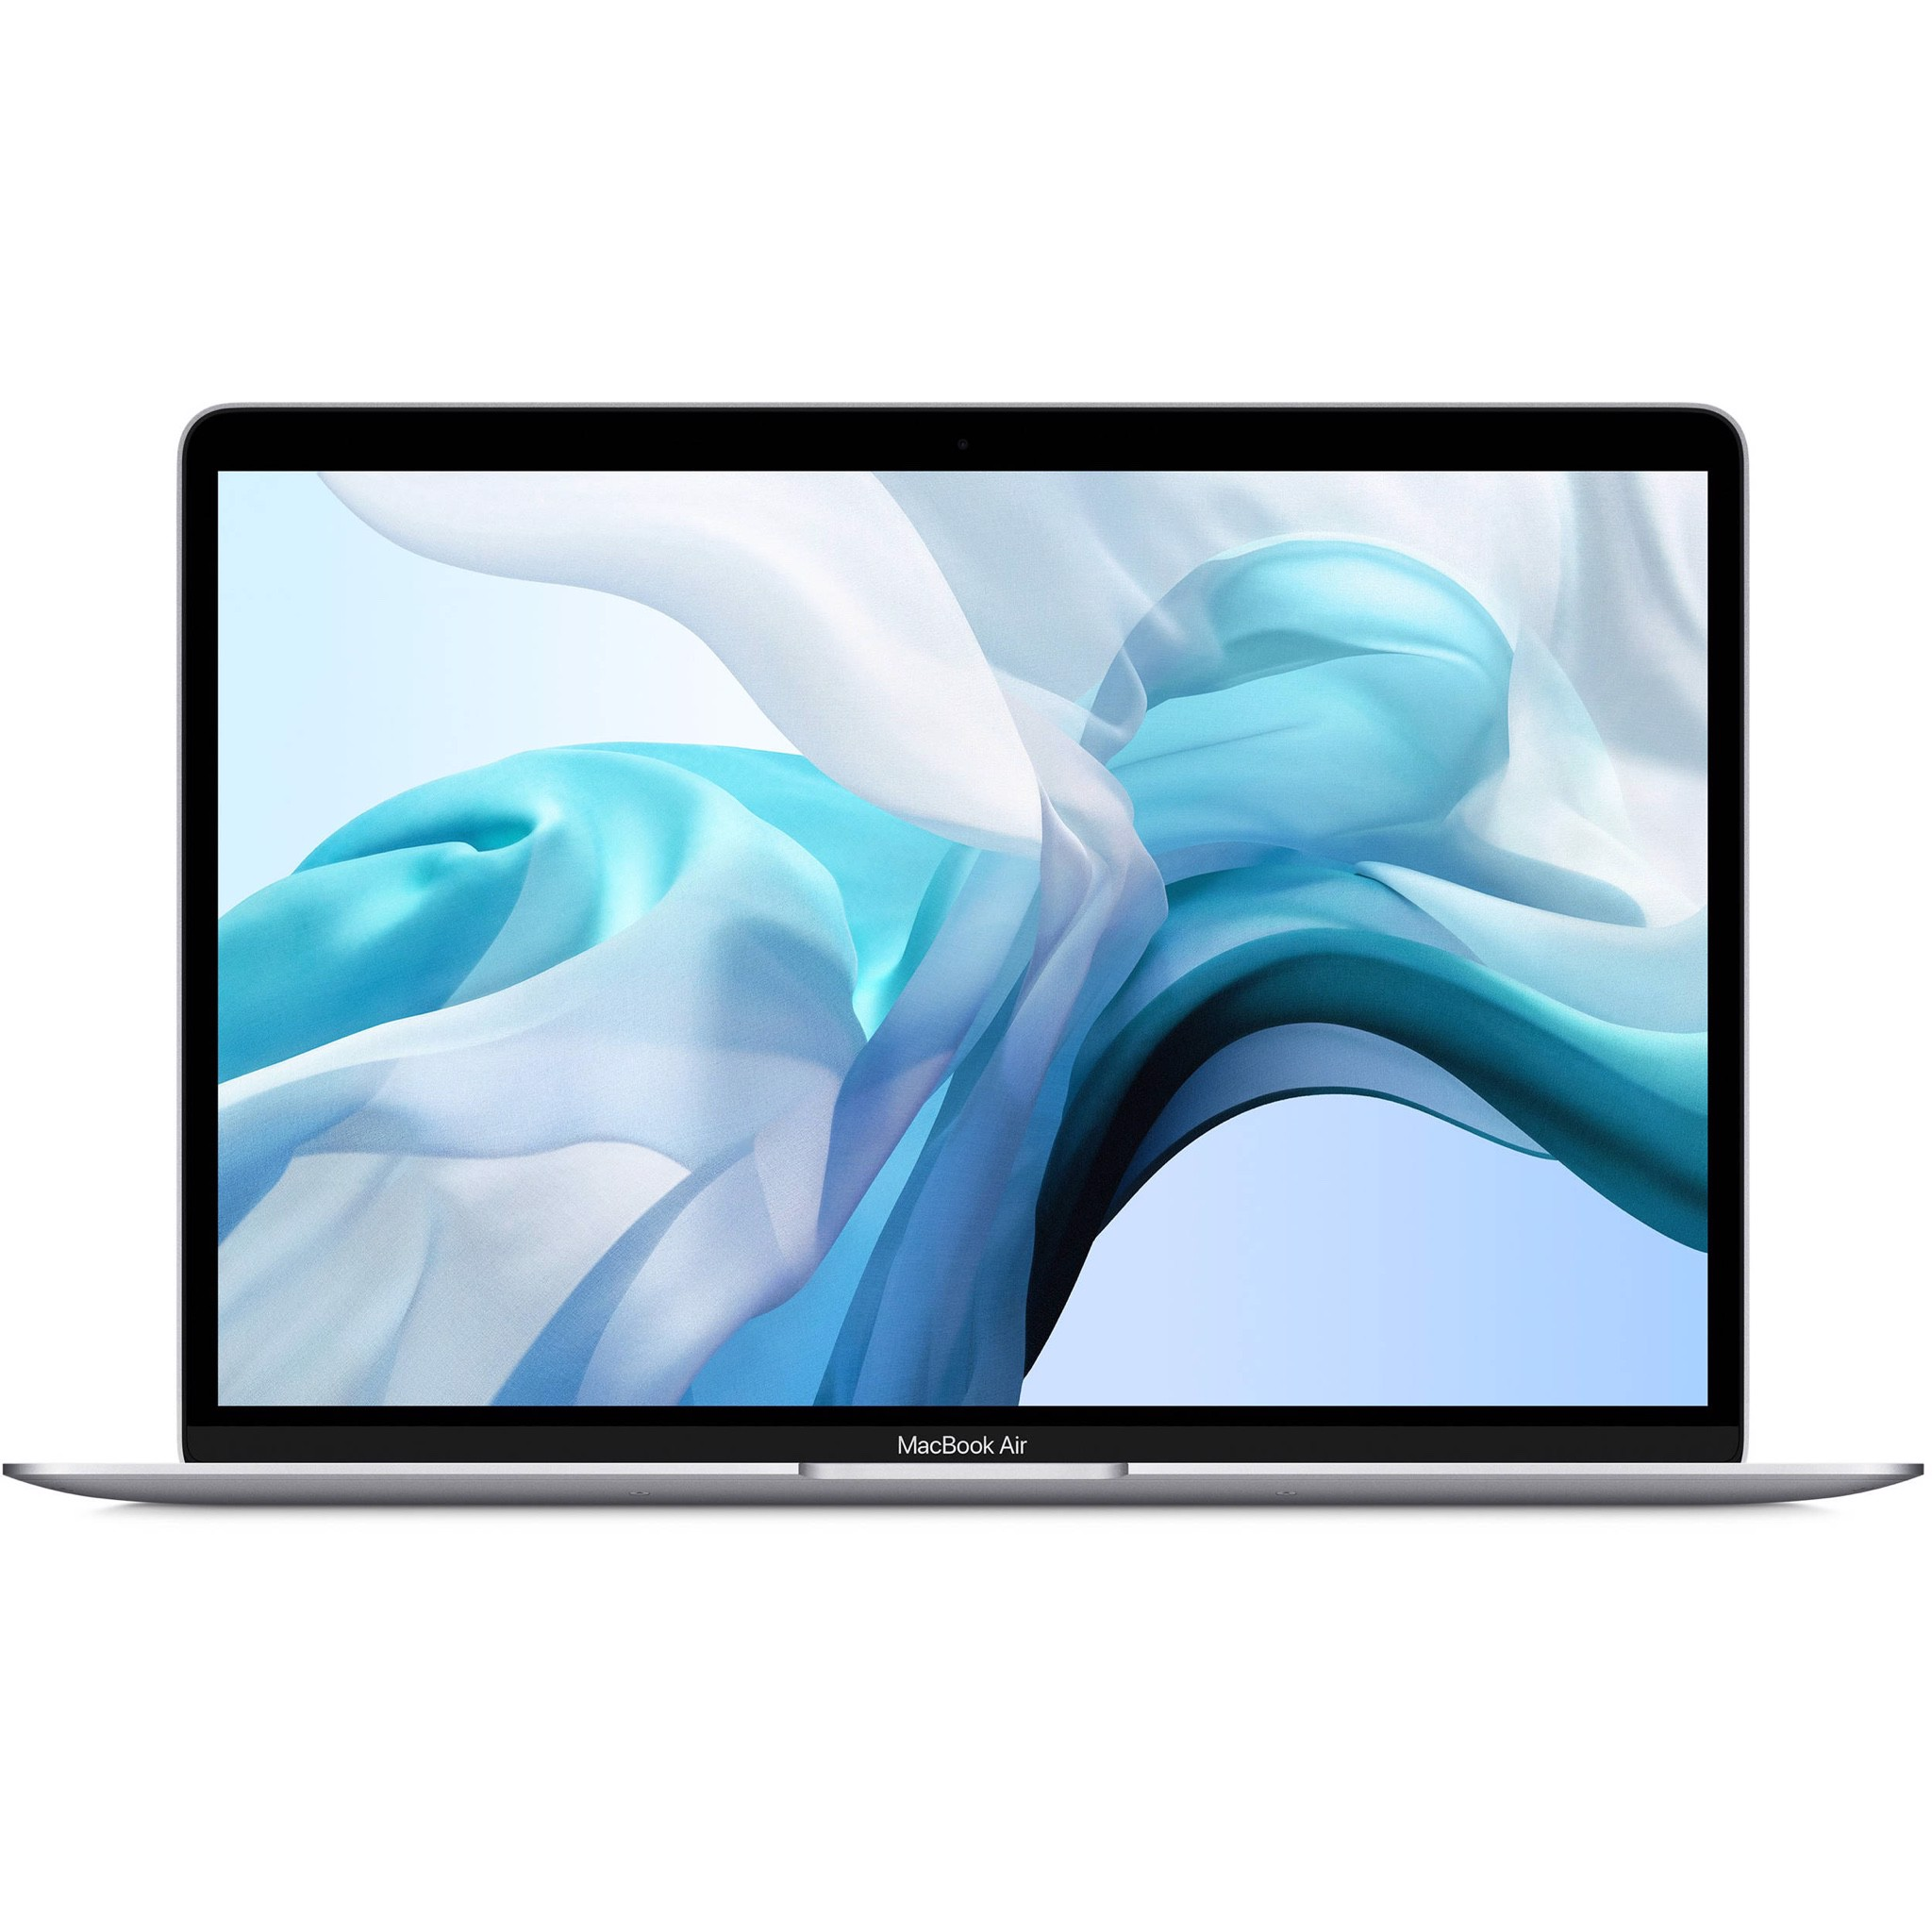 "MVH42 - MACBOOK AIR 13"" 2020 - 512GB - NEW 100%"